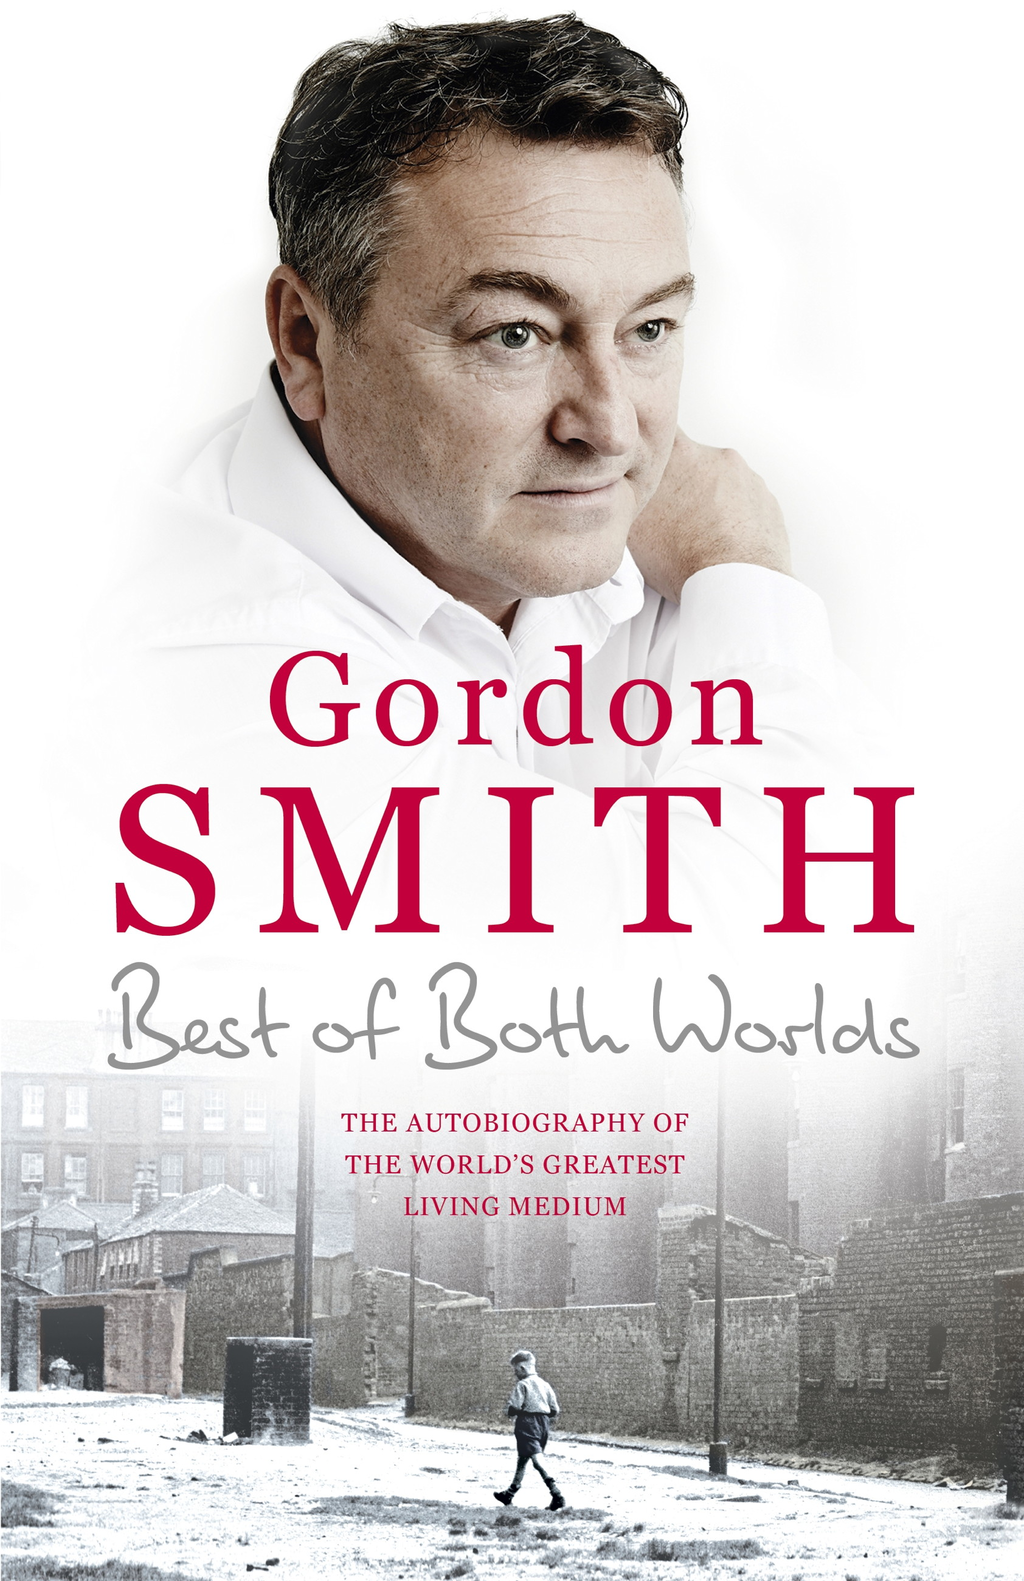 The Best of Both Worlds The autobiography of the world's greatest living medium